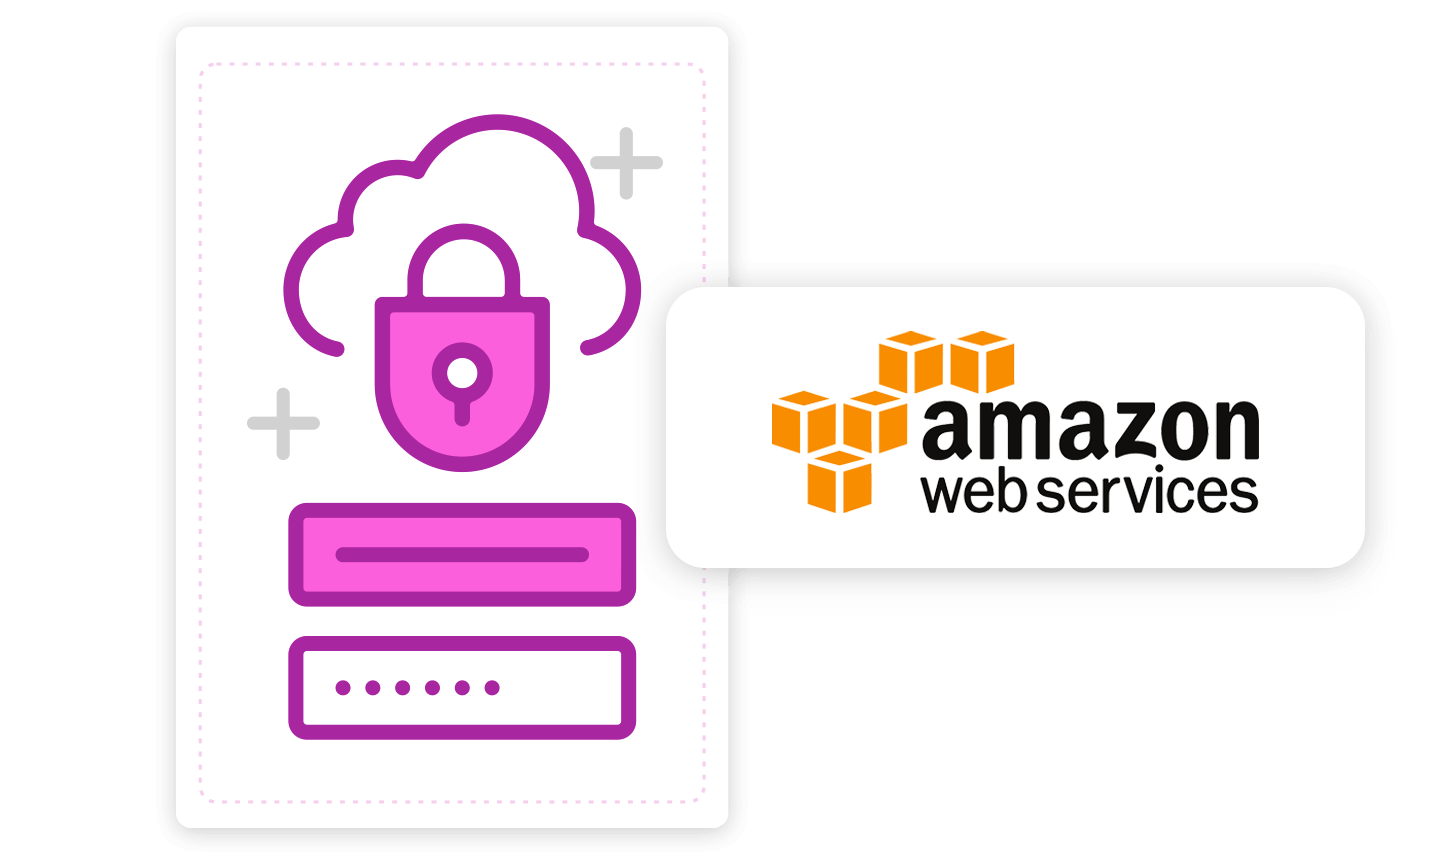 open lms and amazon web services